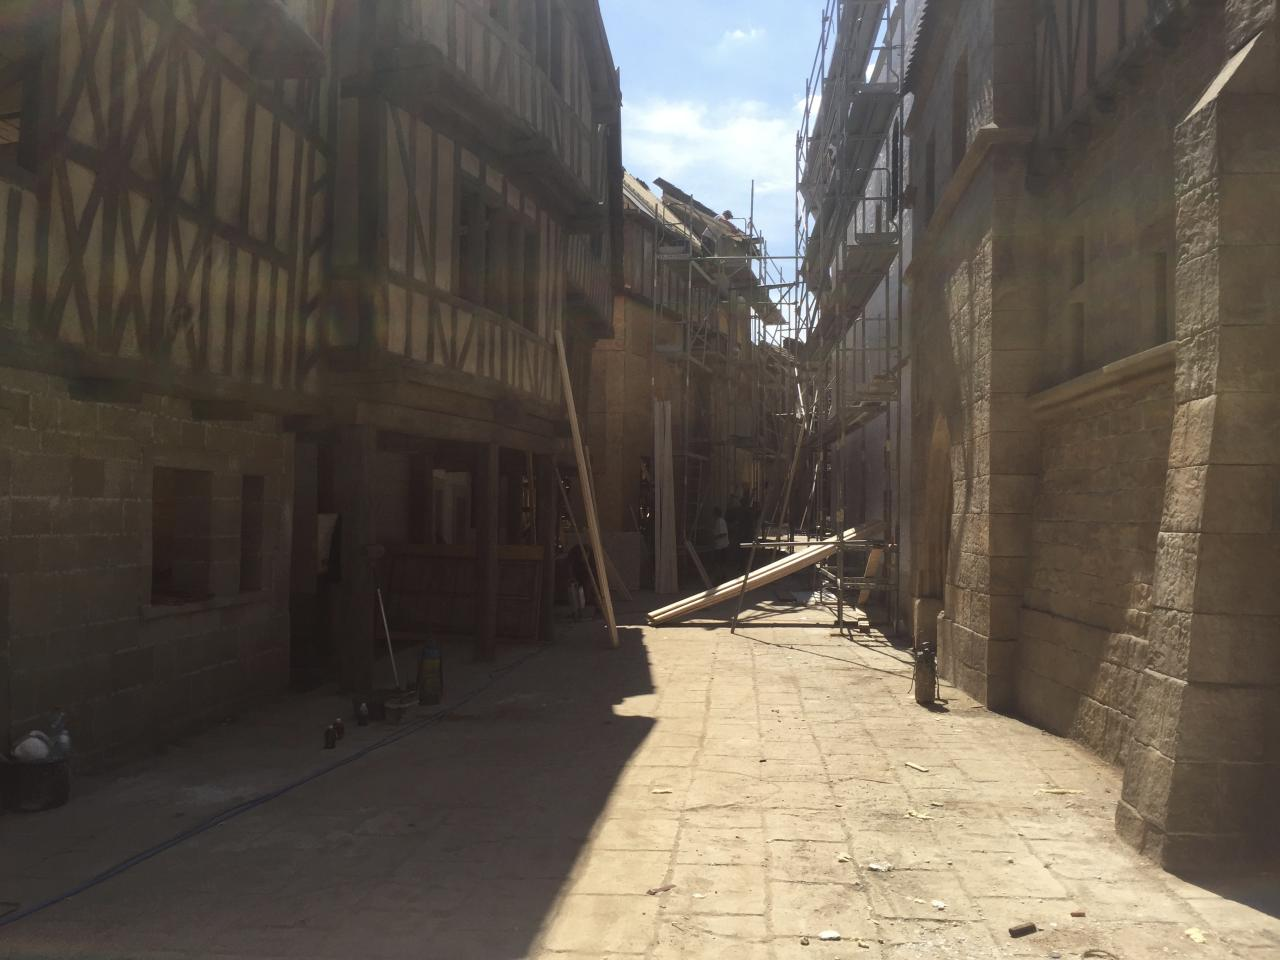 <p>Our amazing @knightfallshow sets being built. It took 400 people, 7 days a week for 4 months to build these. They built multiple streets, a Palace, Temple, market square, Church, city walls (complete with moat), shops and taverns. The stone was so real you could only make out that it wasn't by touching it. When all the extras were on set it was like being in a time machine. — @tom_cullen #Knightfall #HISTORY<br />(Photo: Instagram) </p>